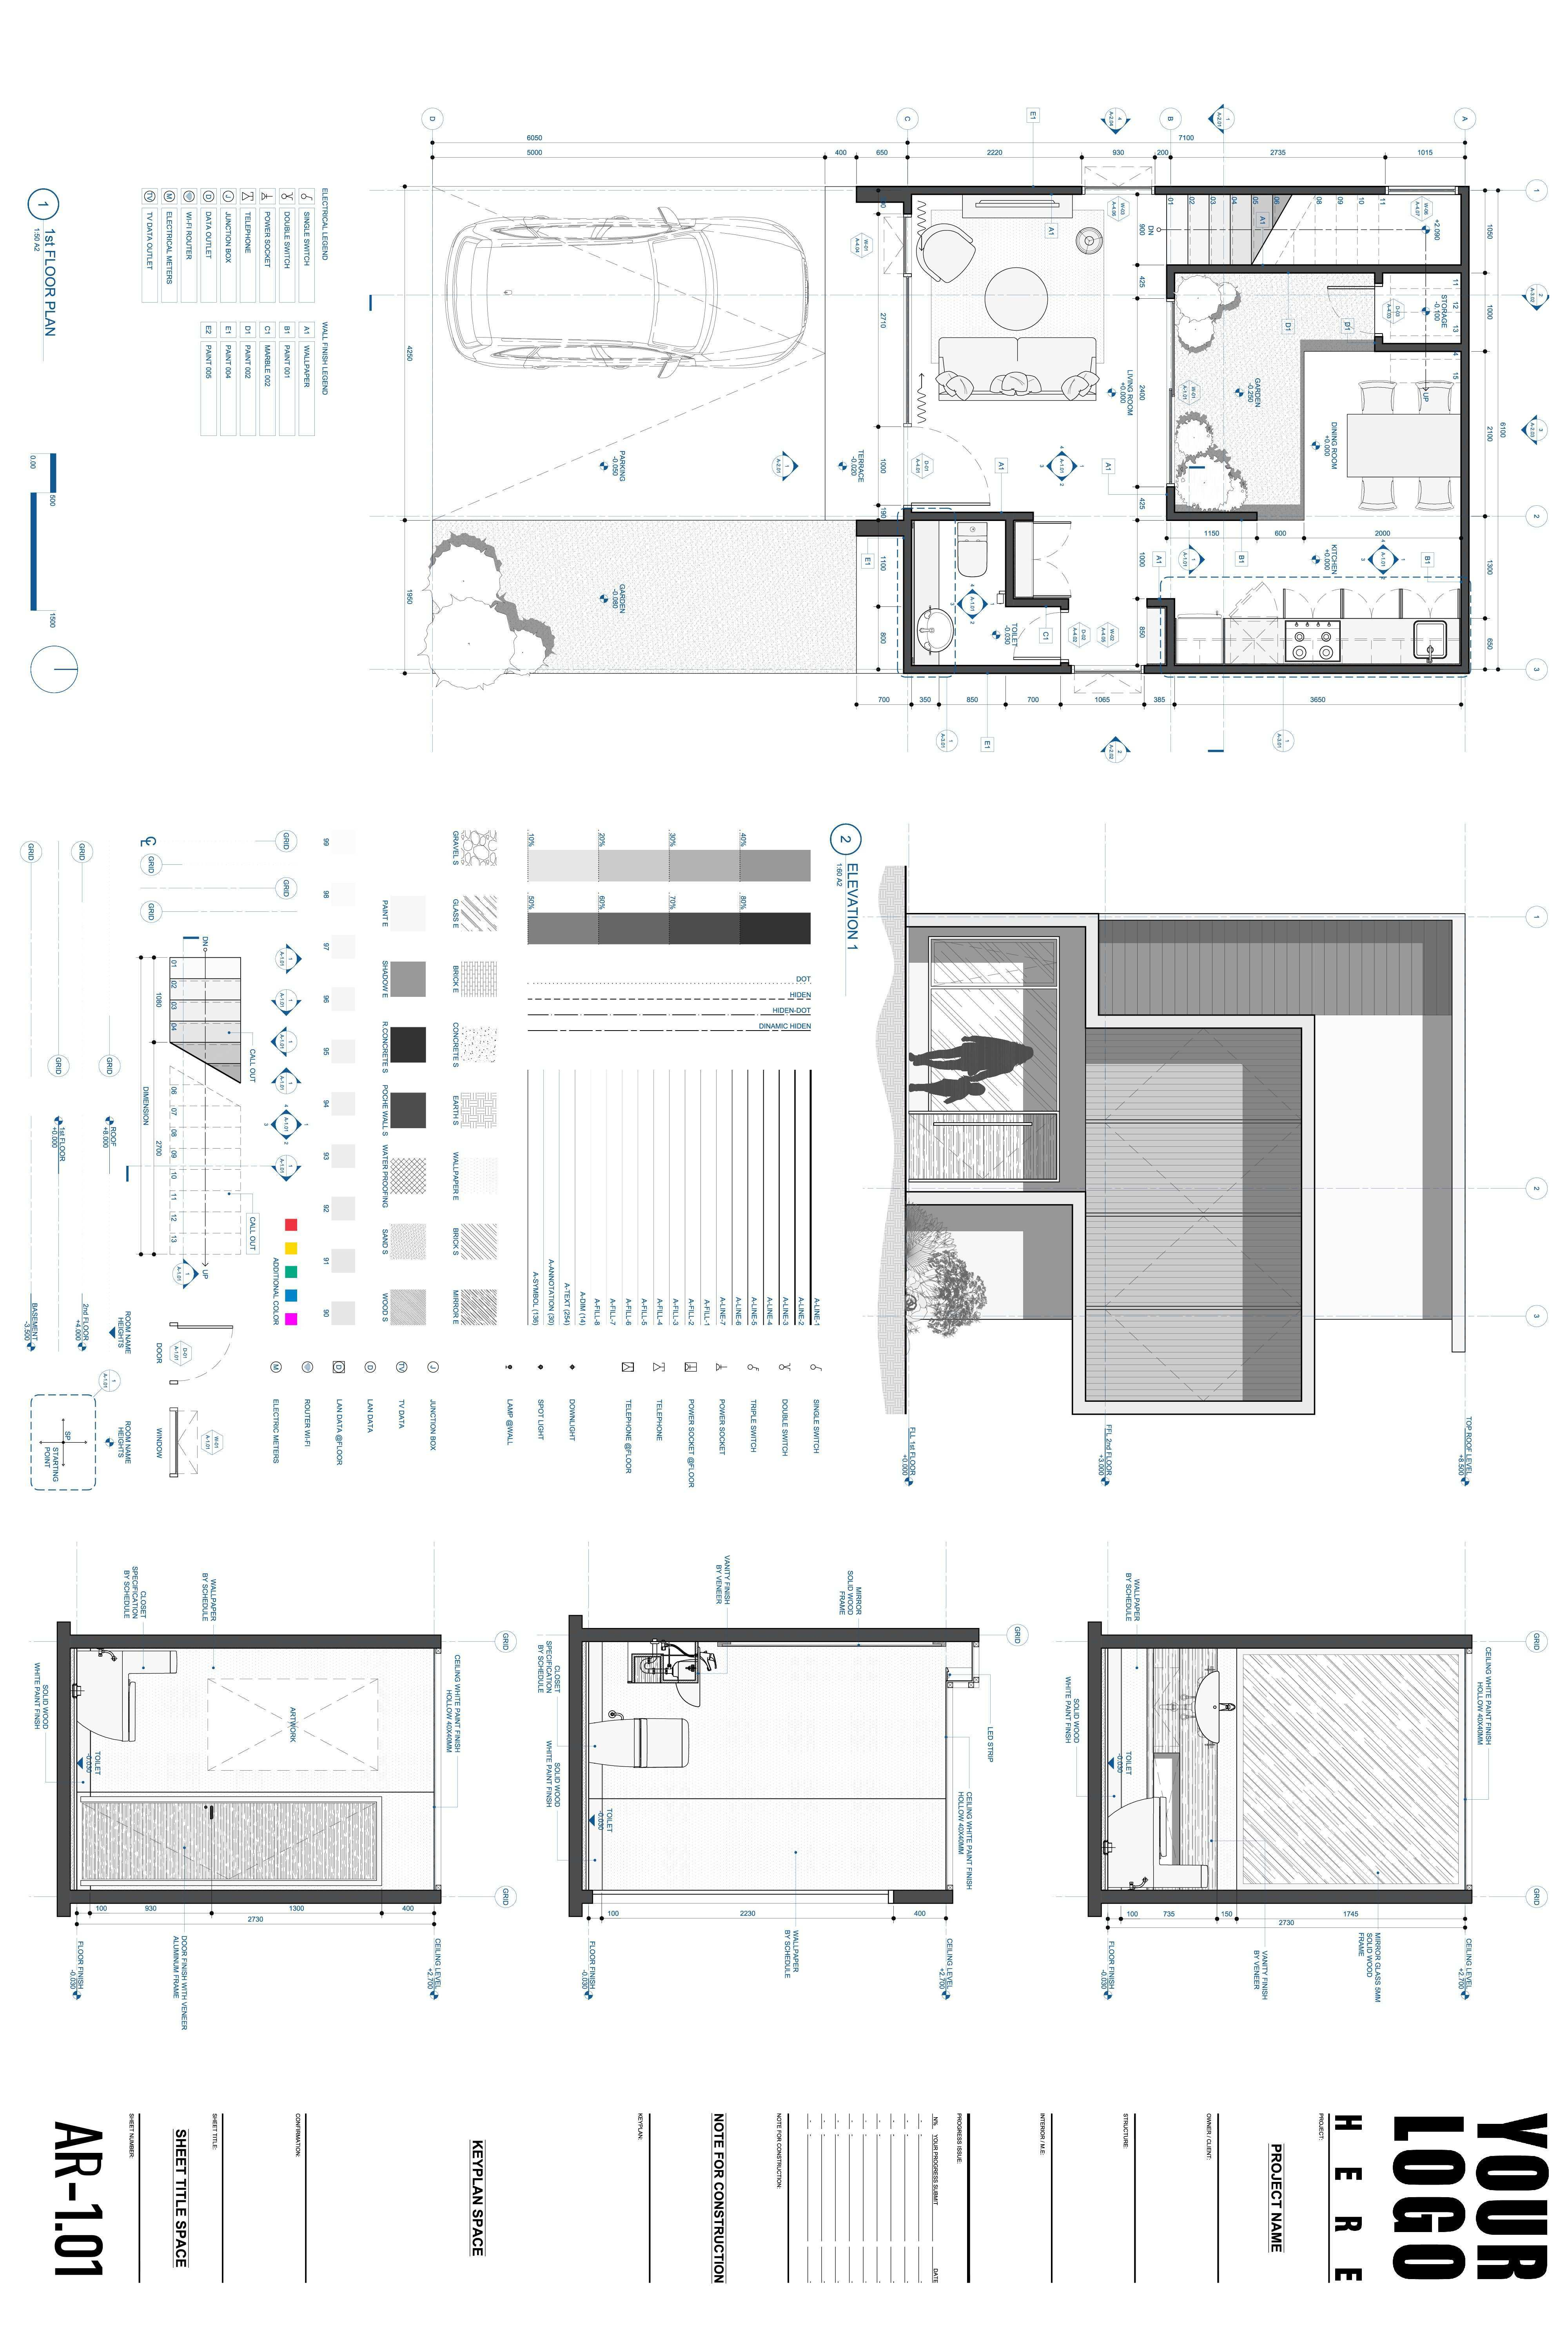 Autocad Template Architecture Drawing Architecture Drawing Plan Architecture Presentation Architecture Drawing